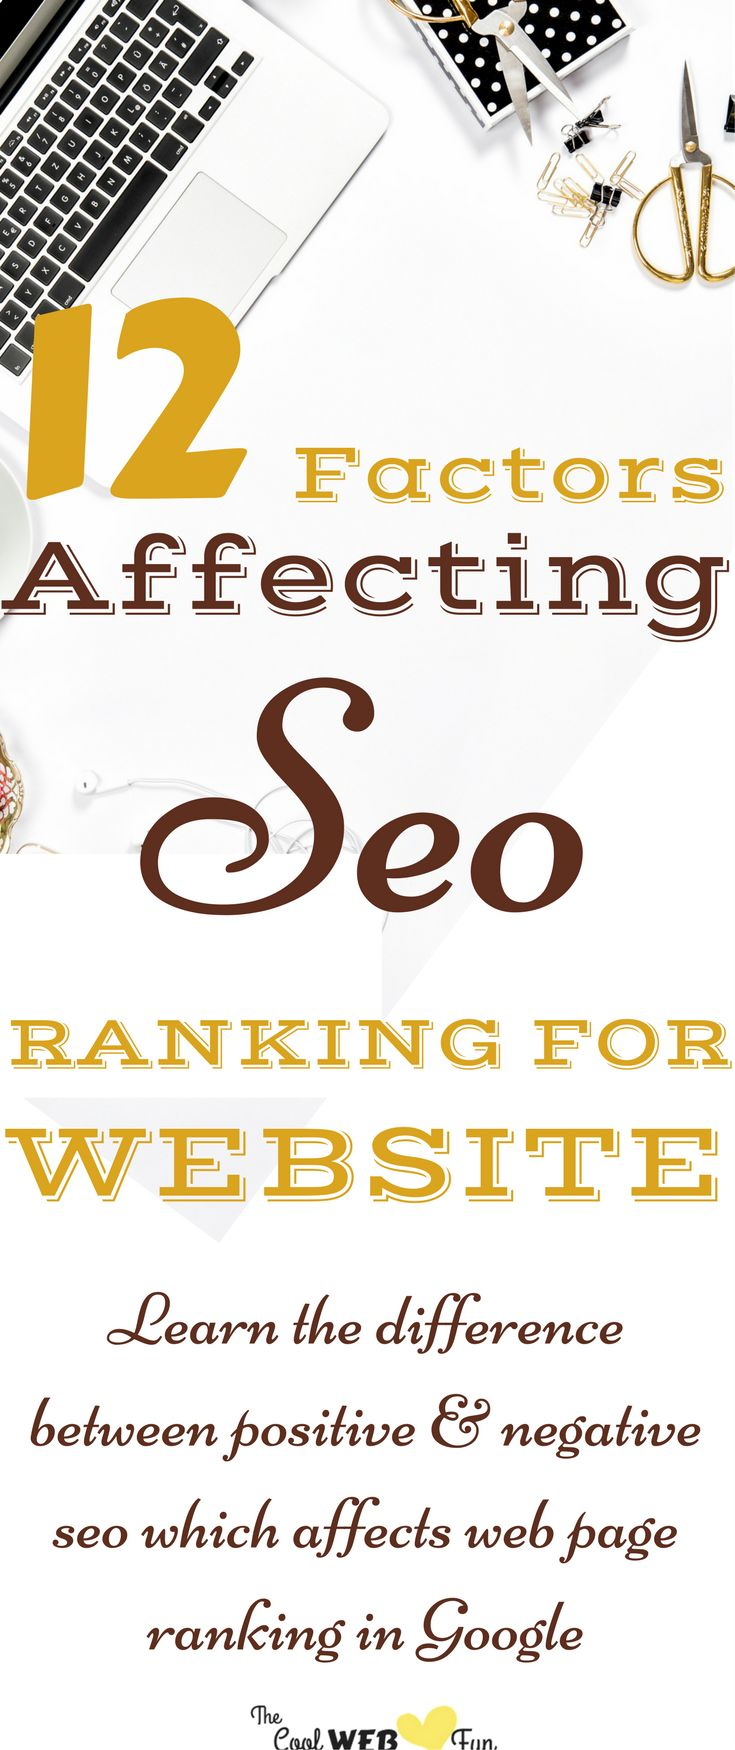 #SEO search engine optimization tips and tricks for ranking in search engines. The list of seo ranking factors.